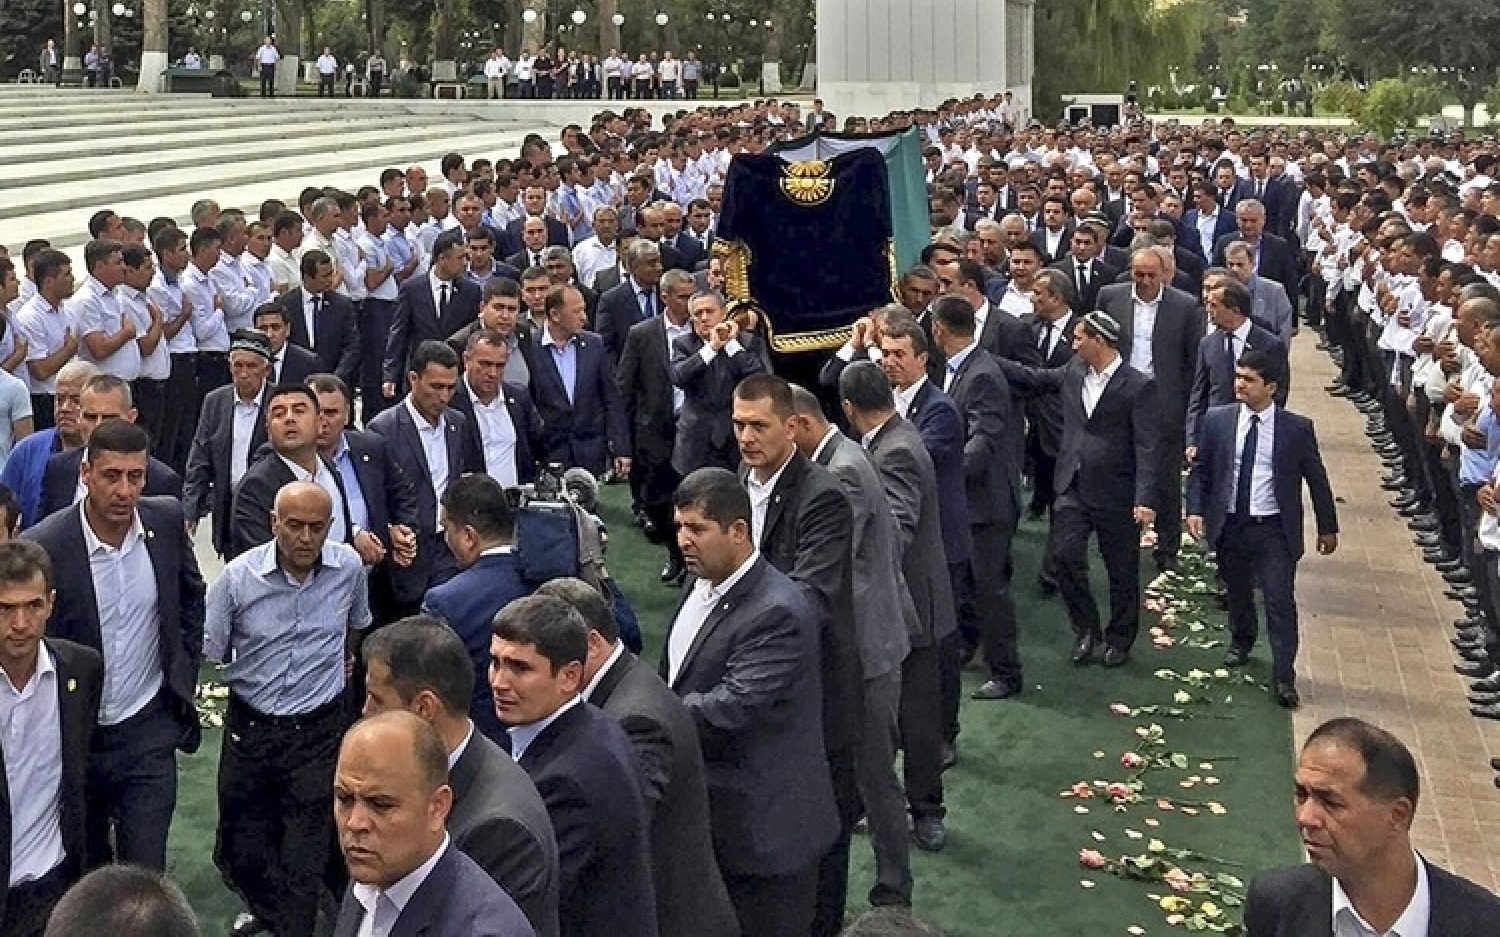 Will new Uzbek leader double down on persecution?